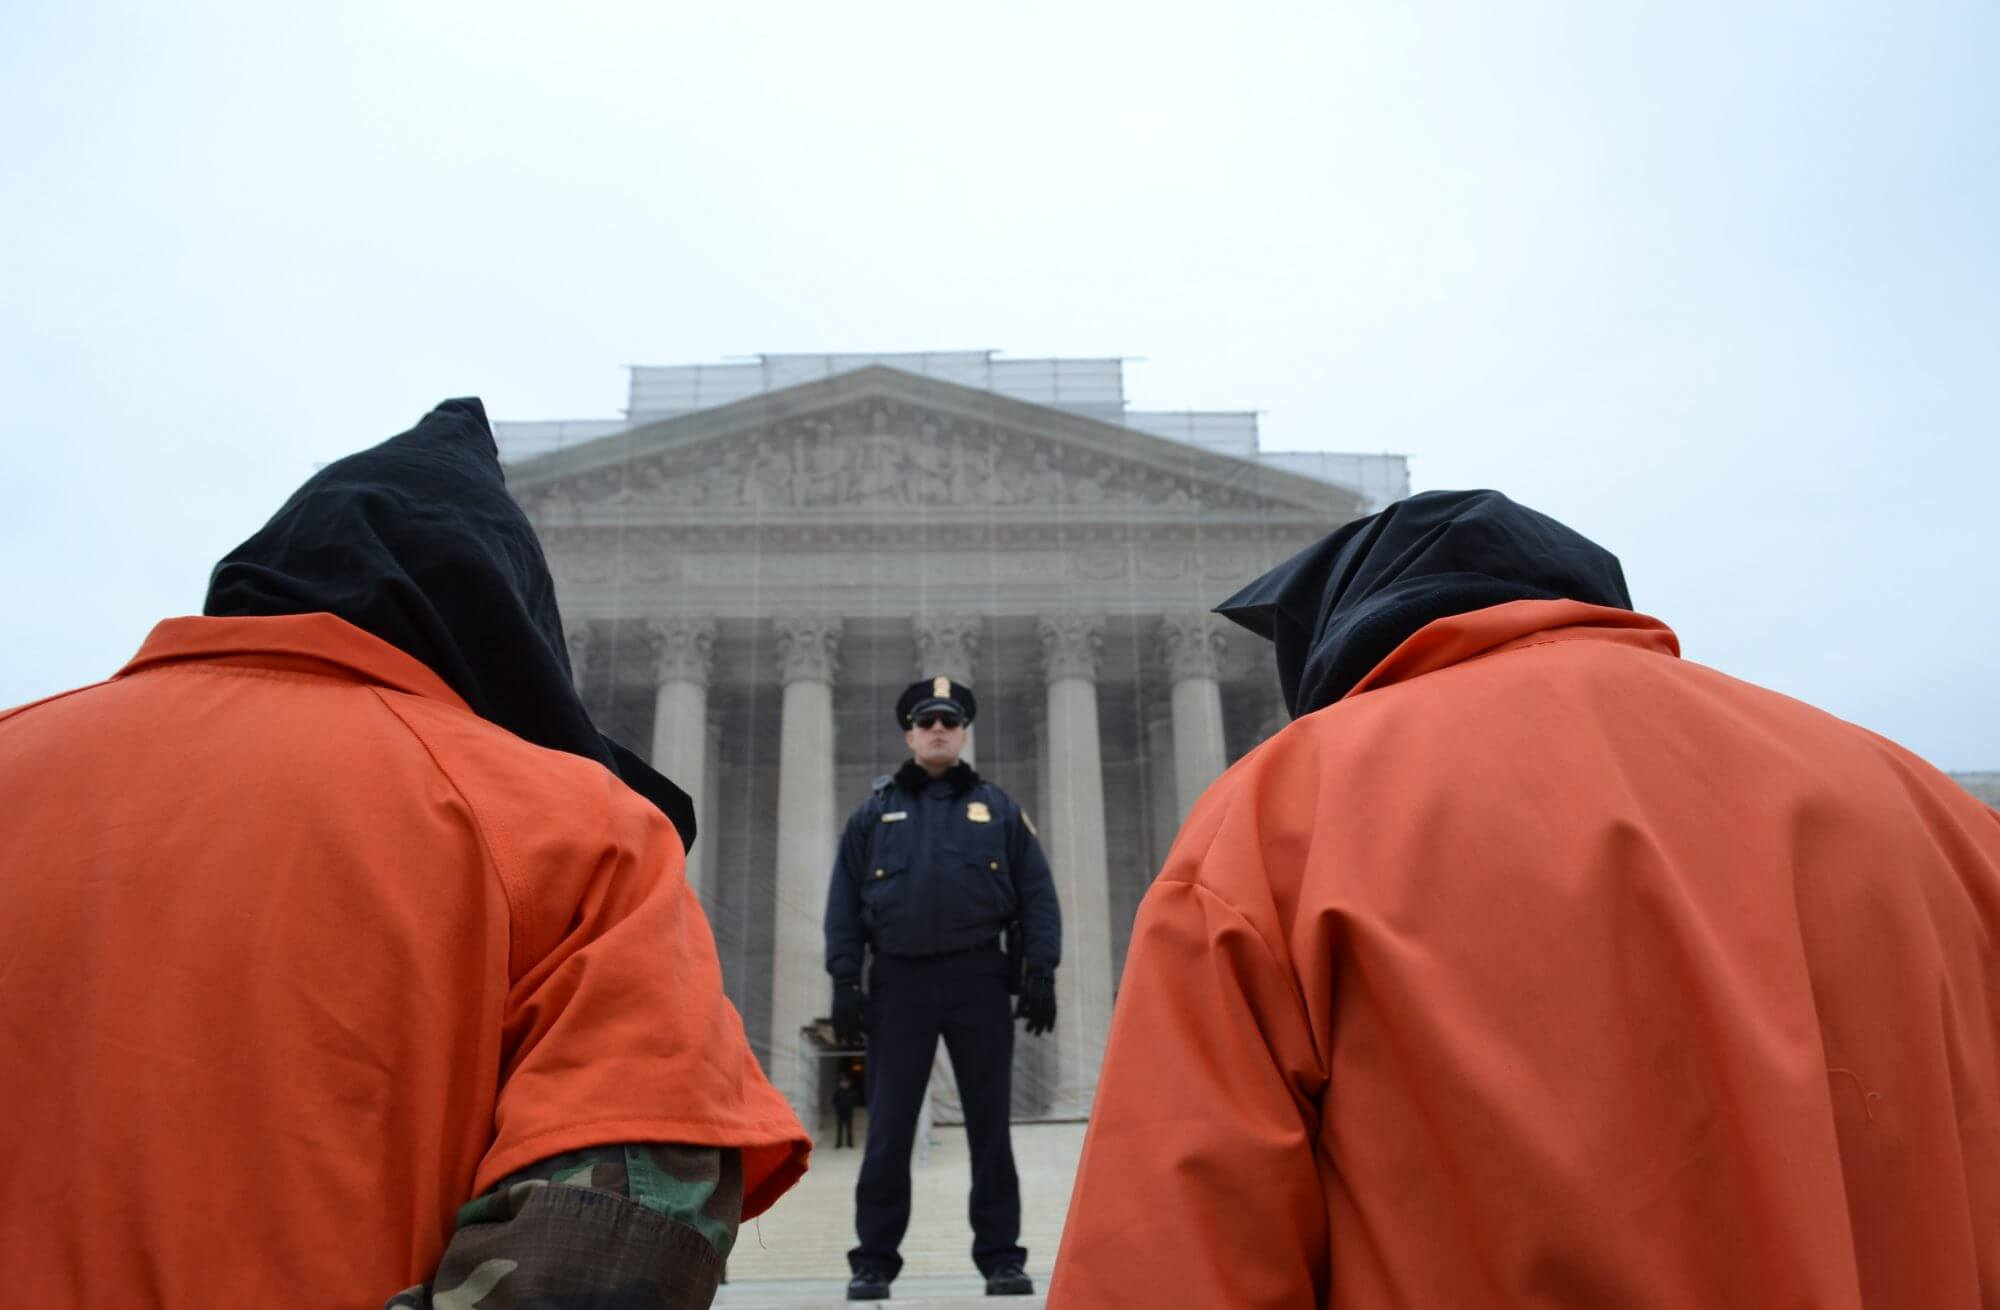 Gitmo protesters march on White House, urge action on closing prison